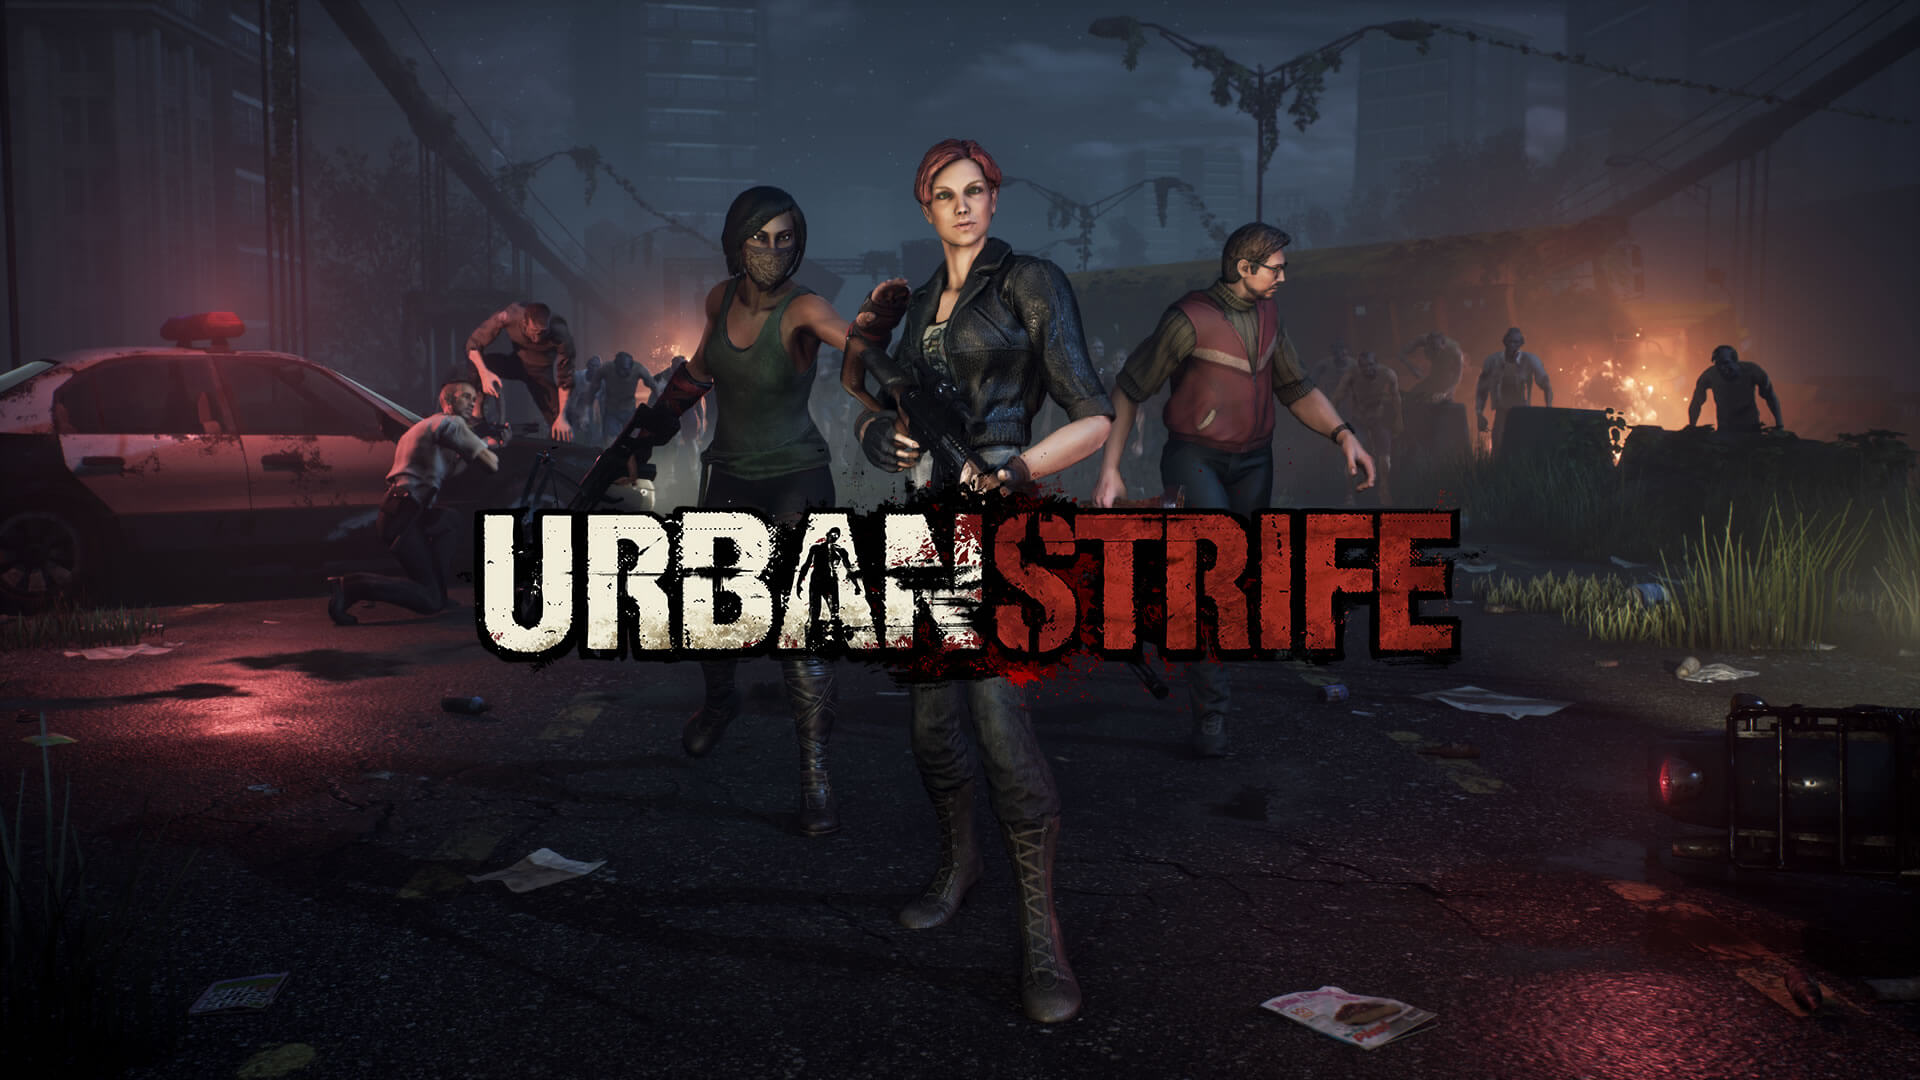 Urban Strife Overview